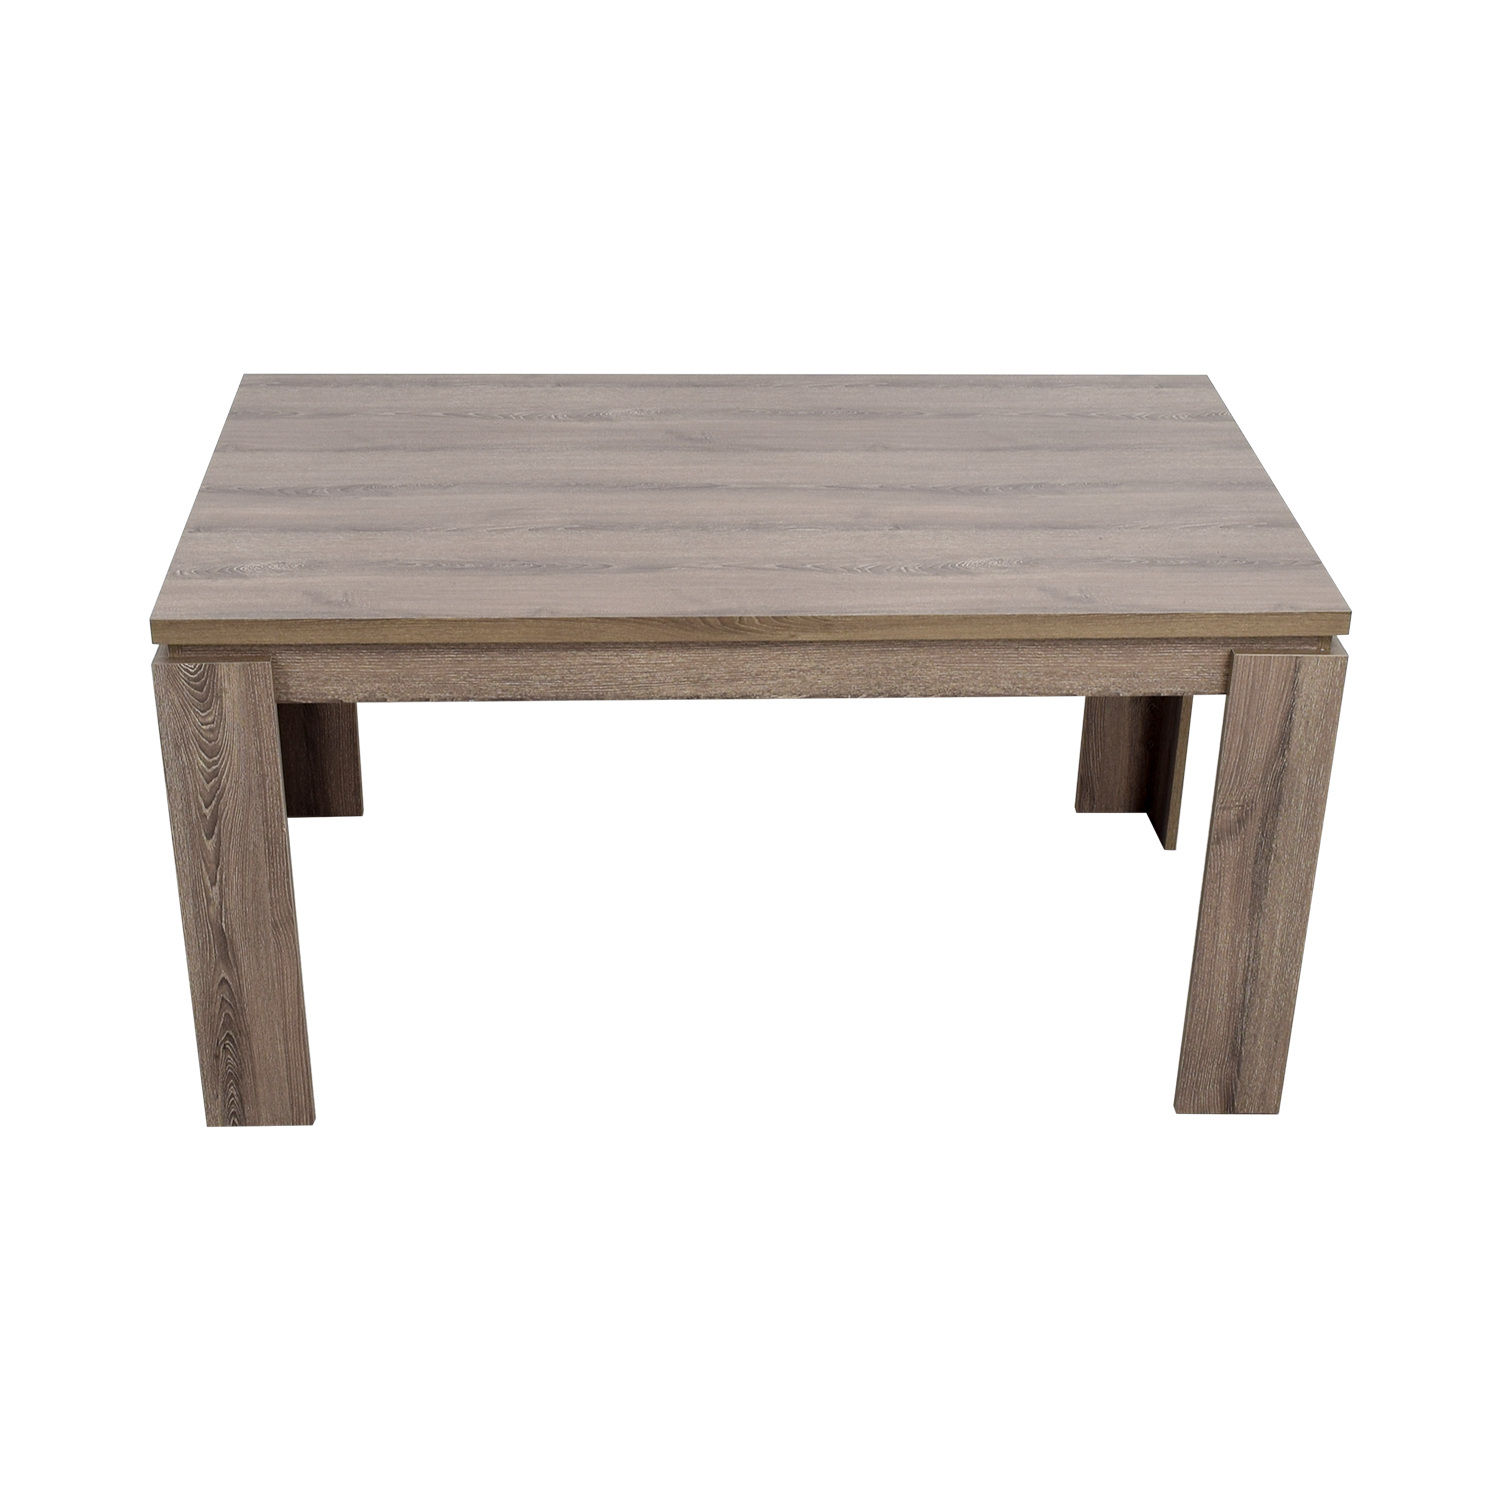 shop WilliamBrugman Rustic Grey Table WilliamBrugman Tables